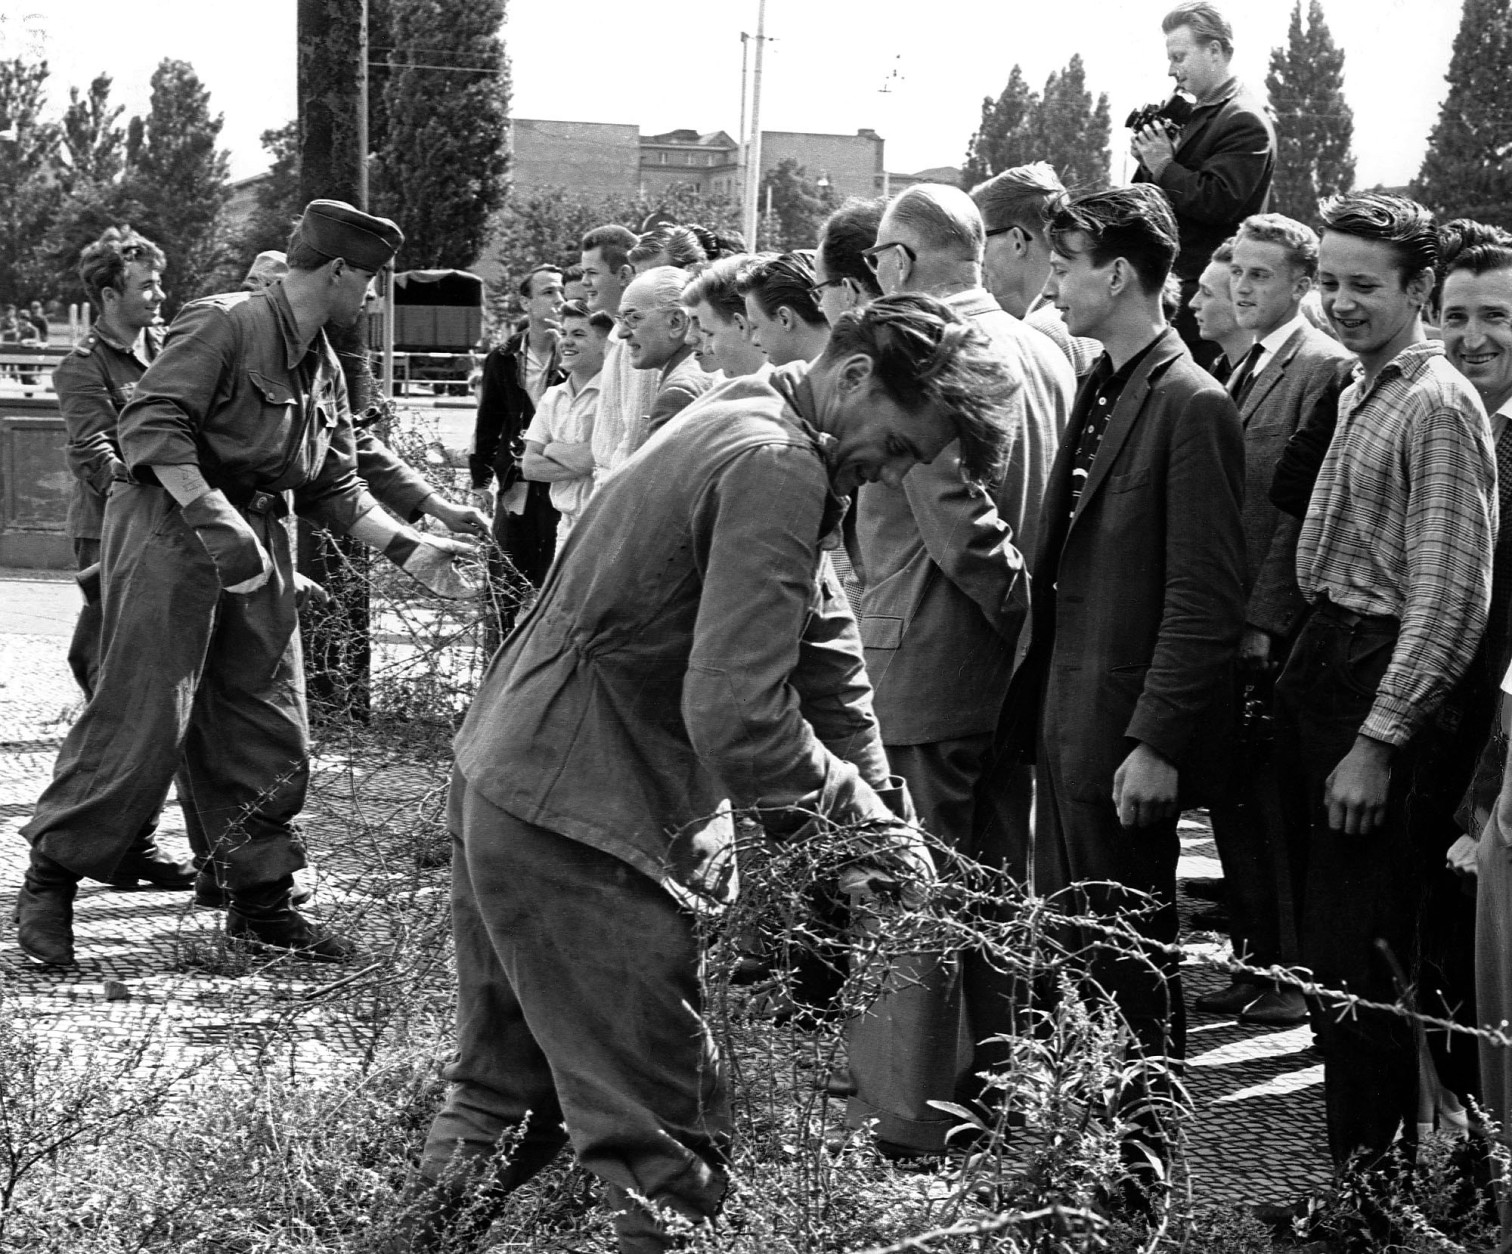 East German soldiers, left, set up barbed wire barricades August , 13, 1961 at the border seperating Berlin, Germany, to restrict the travel between the eastern and western part of the German city. West Berlin citizens, right, watch the work.  (AP Photo)